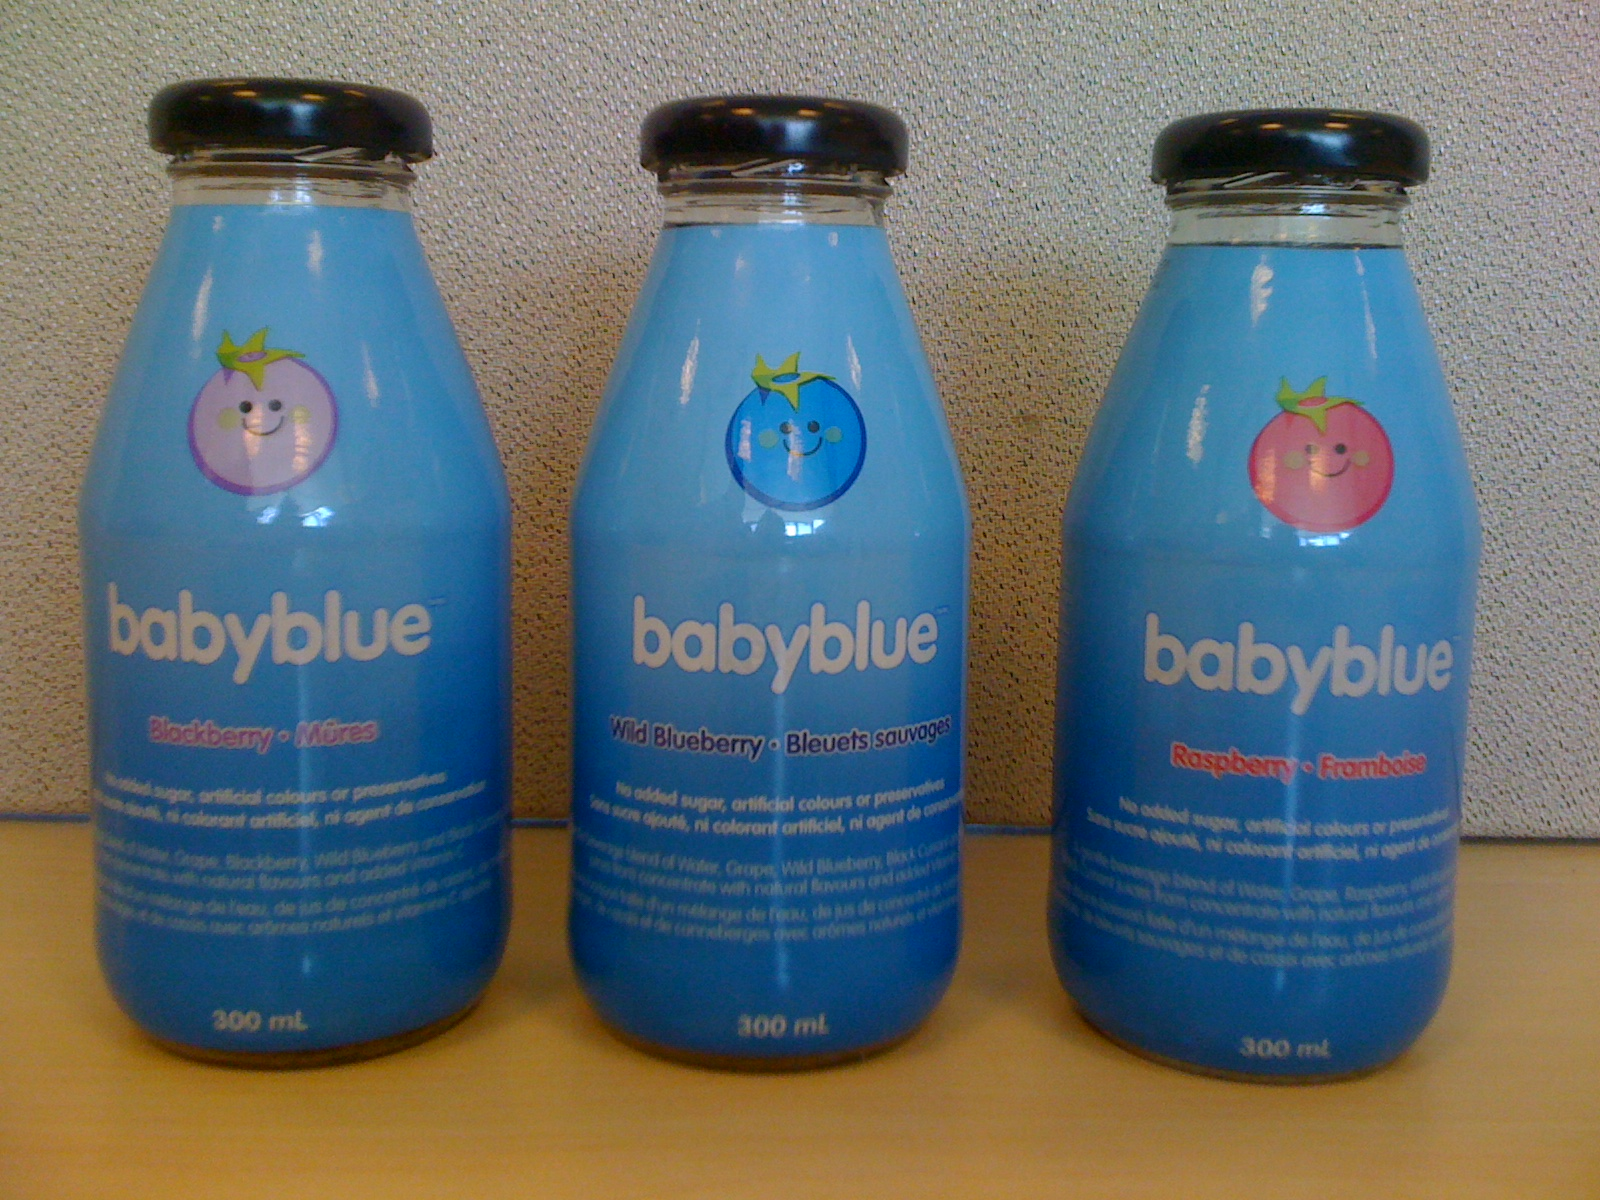 babyblue shrink labels